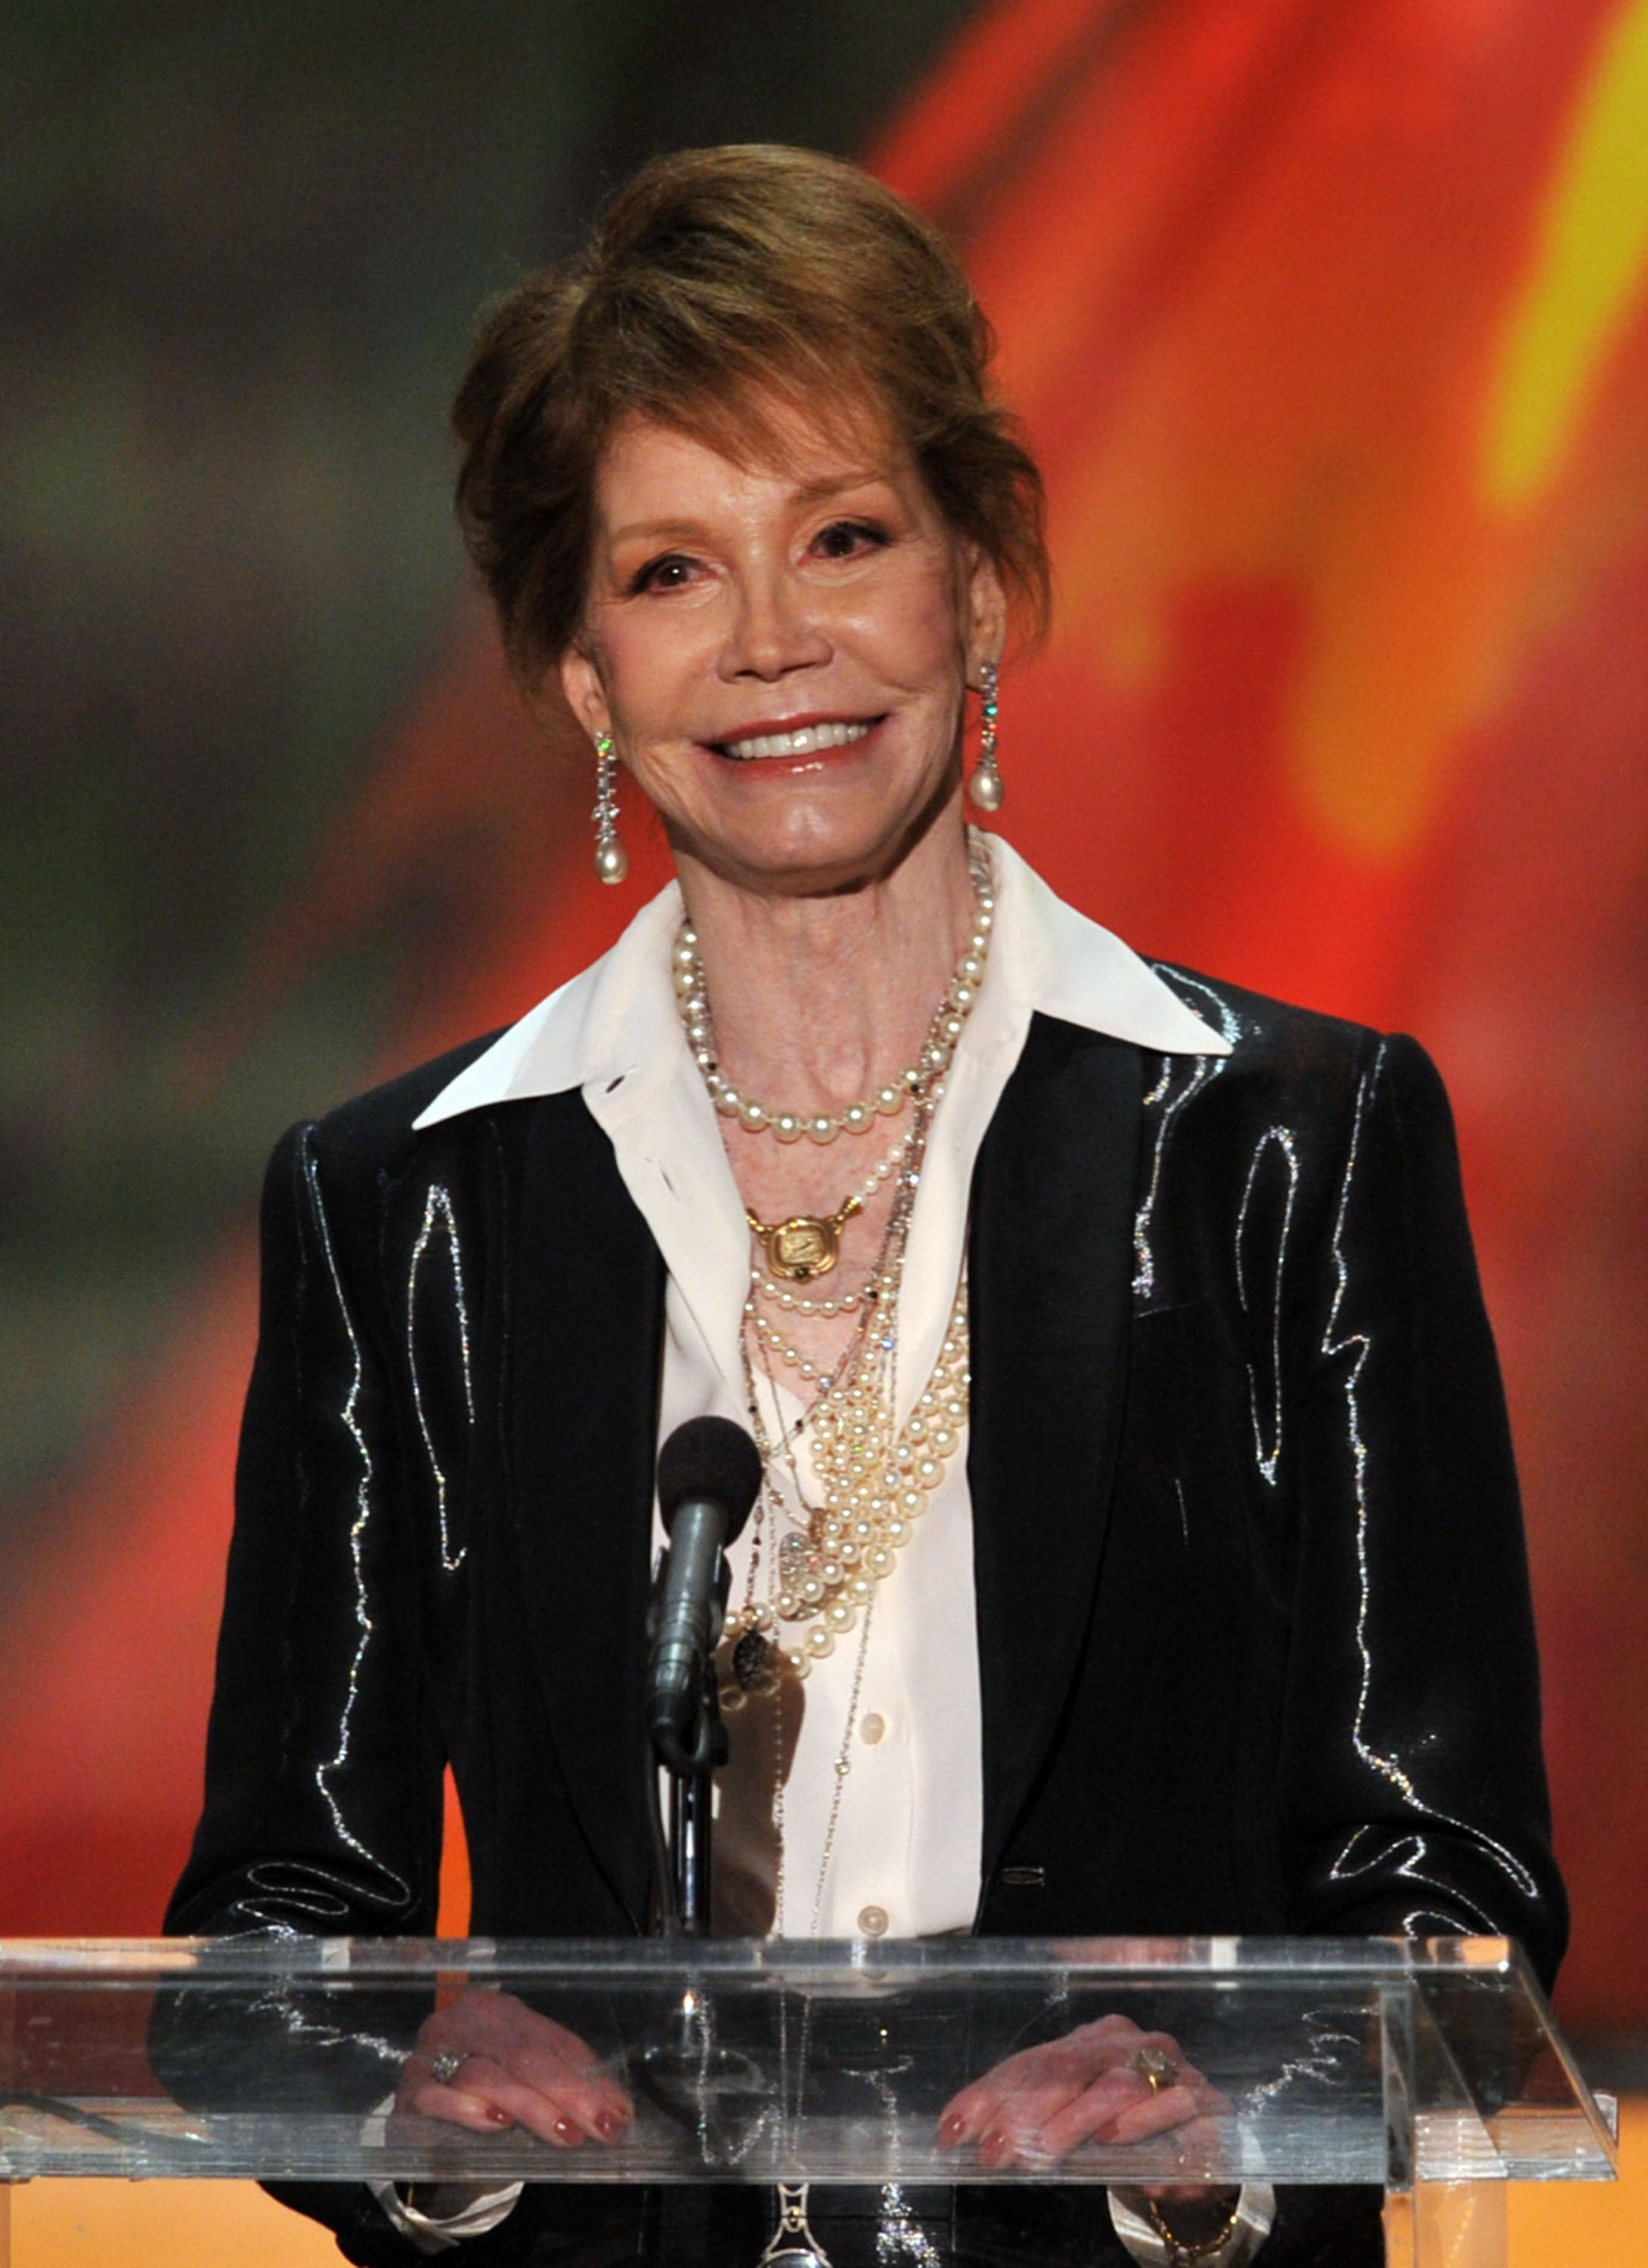 Mary Tyler Moore accepts the Life Achievement Award on January 29, 2012, in Los Angeles, California   Photo: Getty Images.